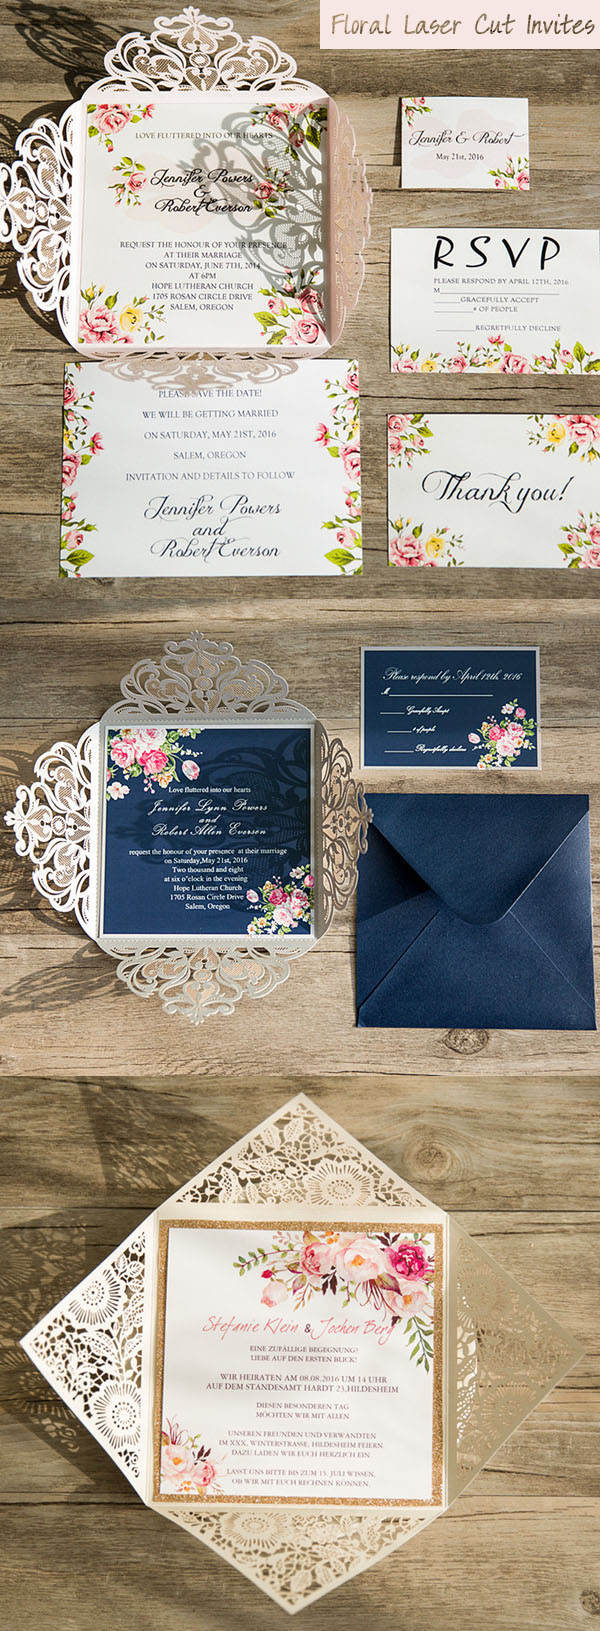 romantic laser cut floral wedding invitations trends for 2017